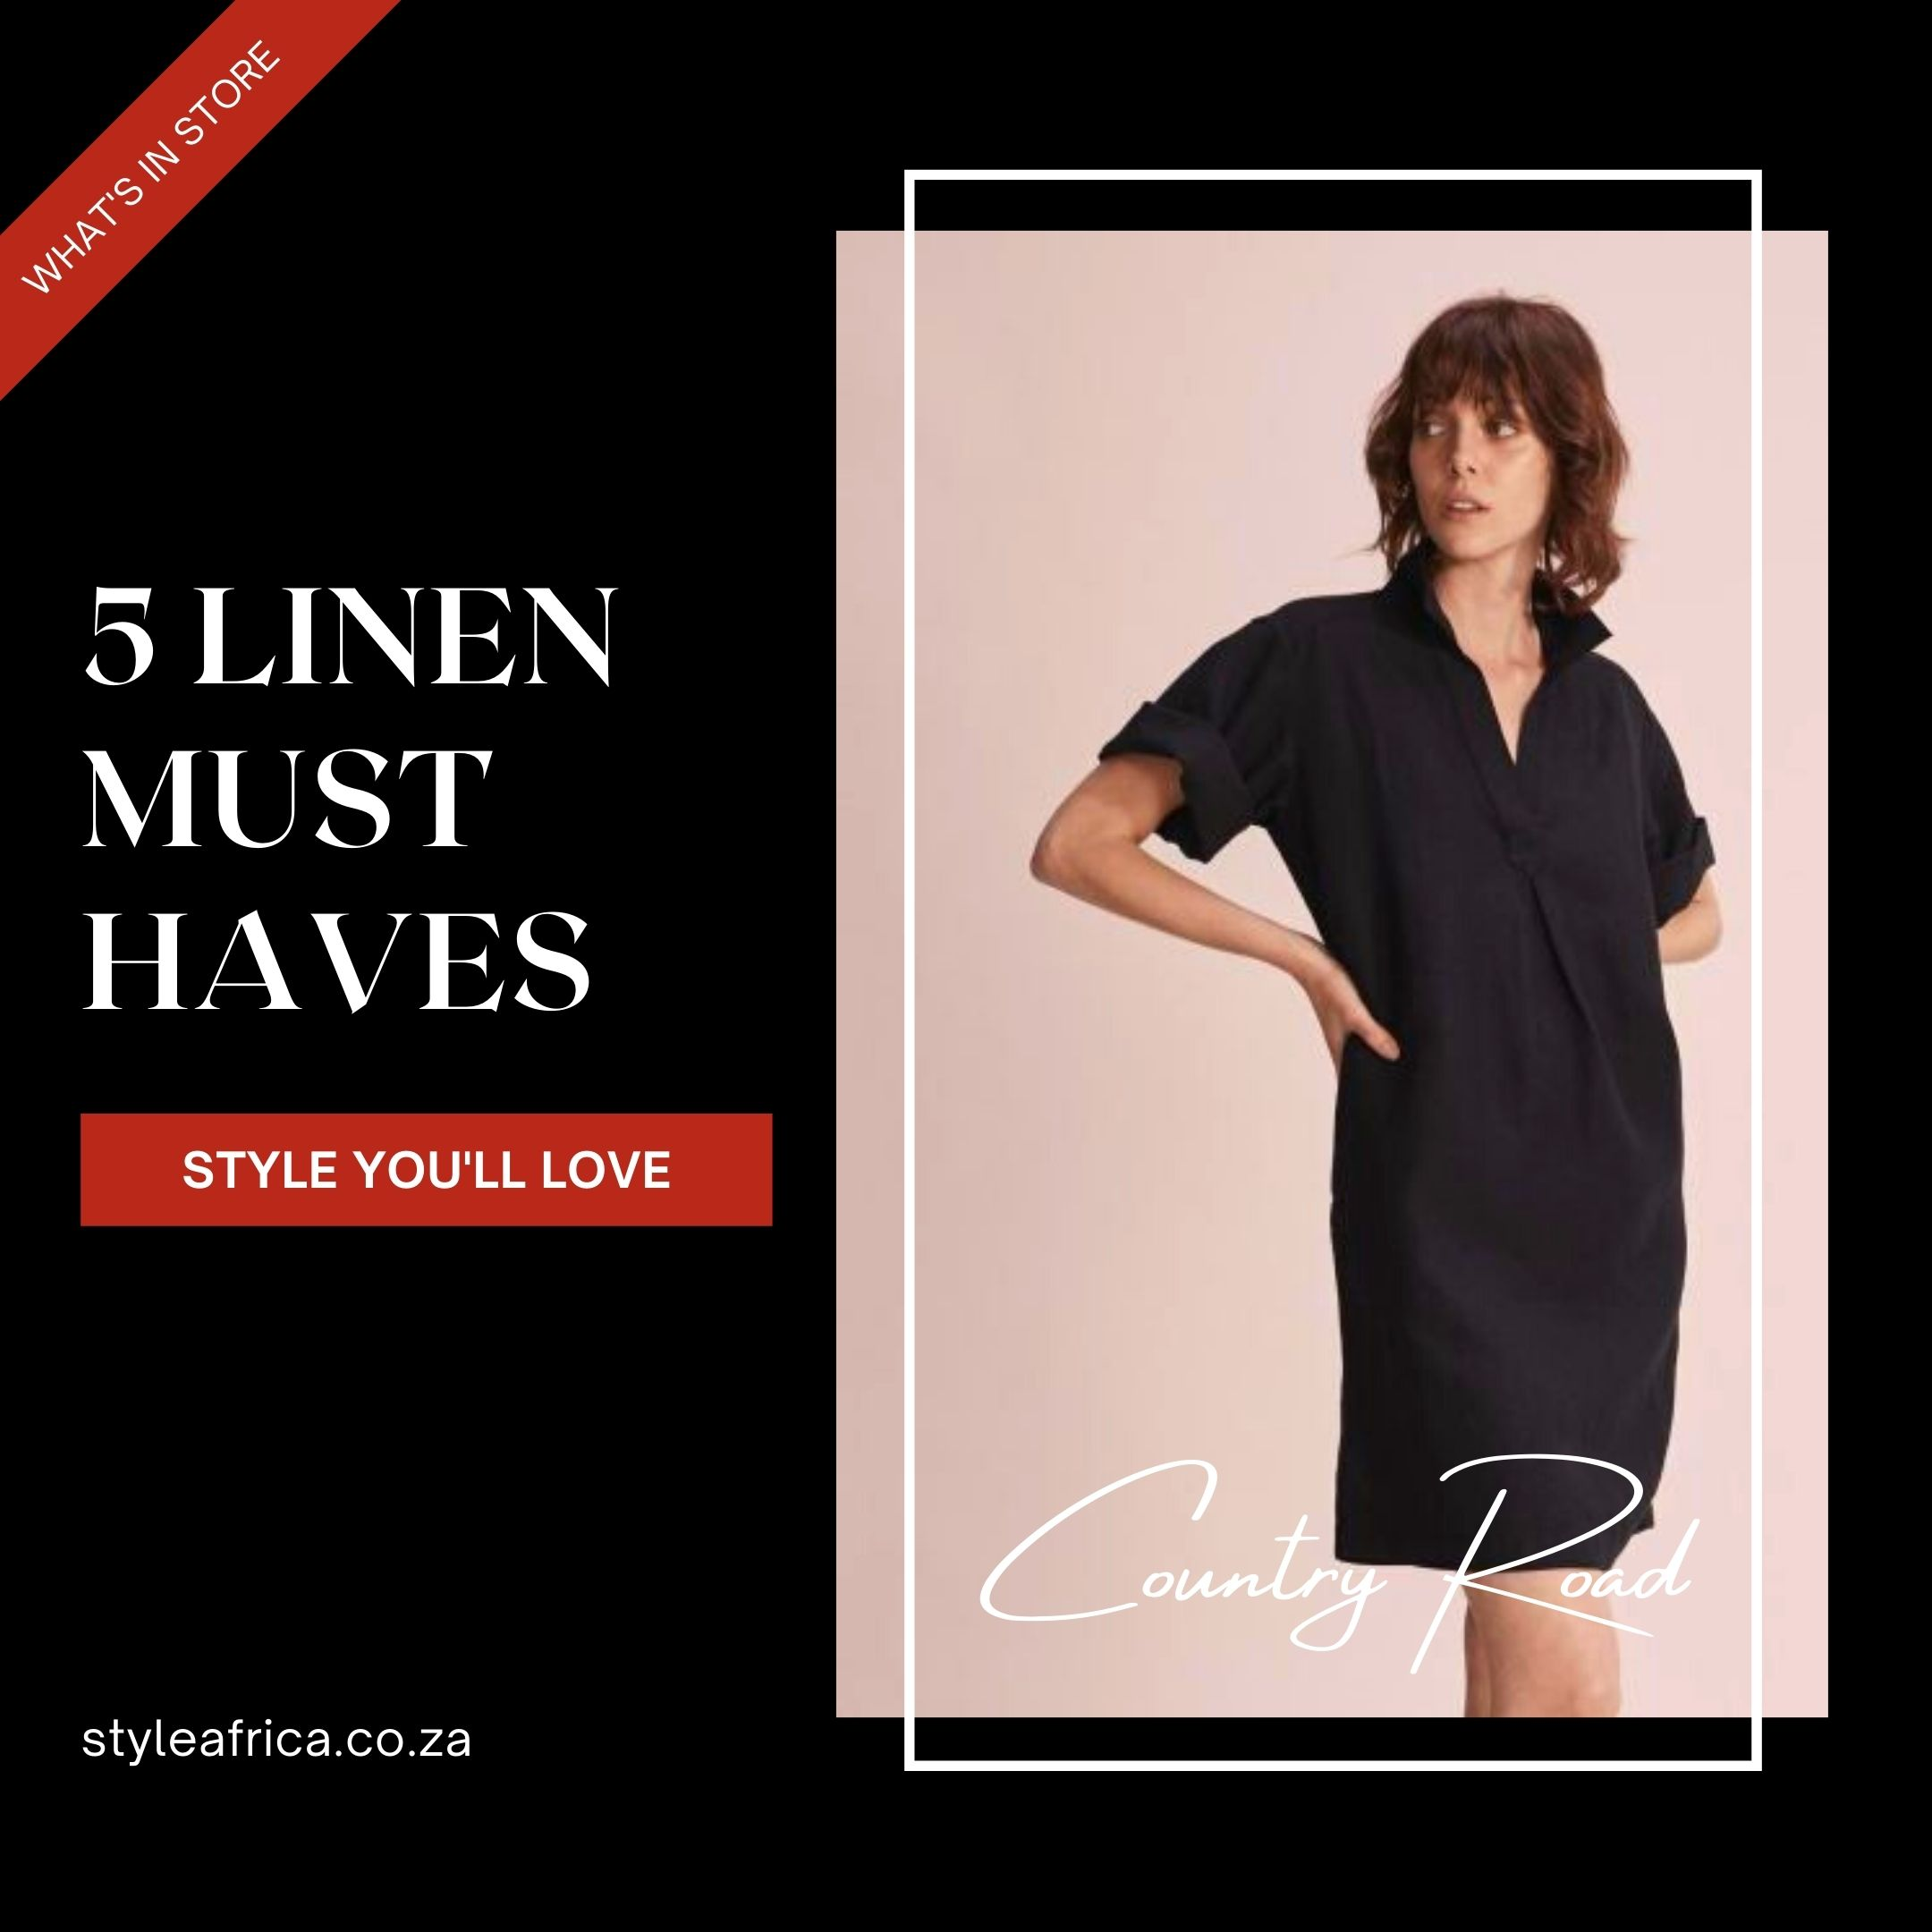 5 LINEN MUST HAVES - COUNTRY ROAD - STYLE AFRICA